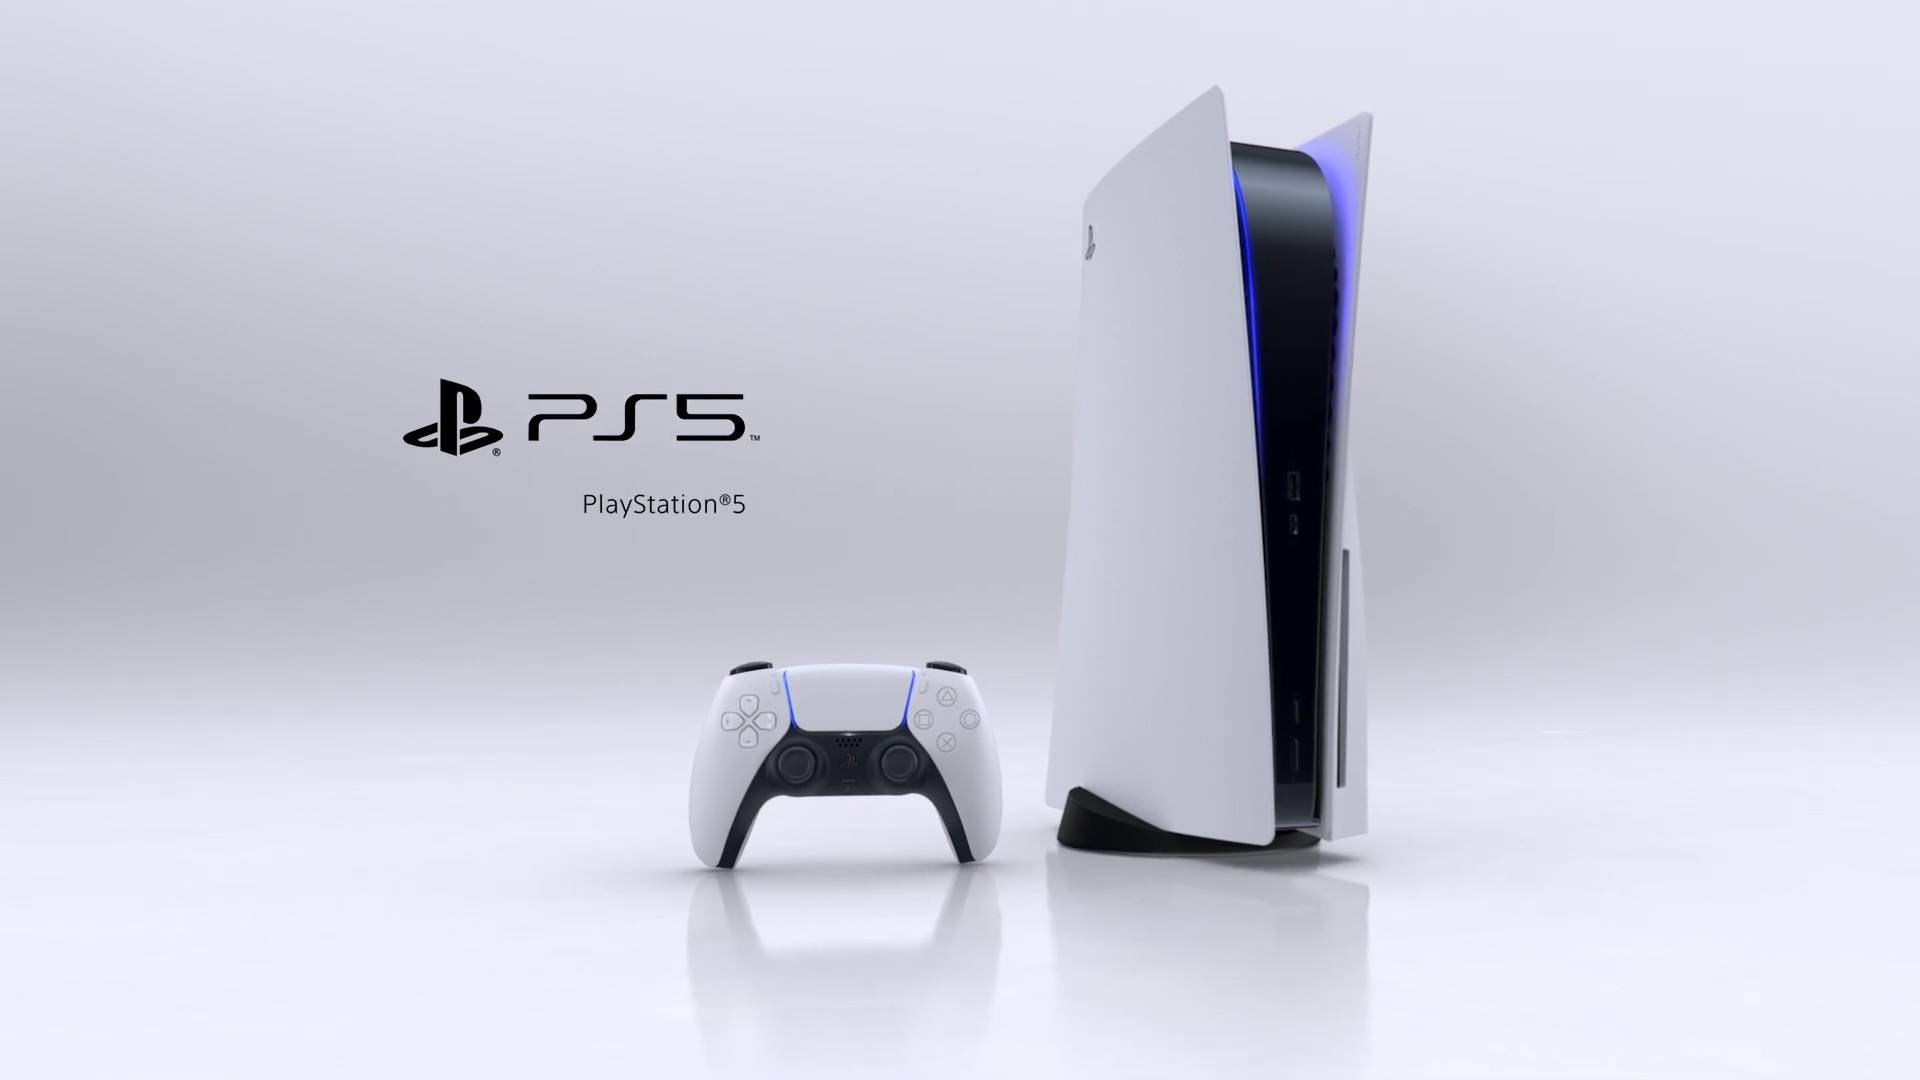 PS5 PlayStation 5 console hardware